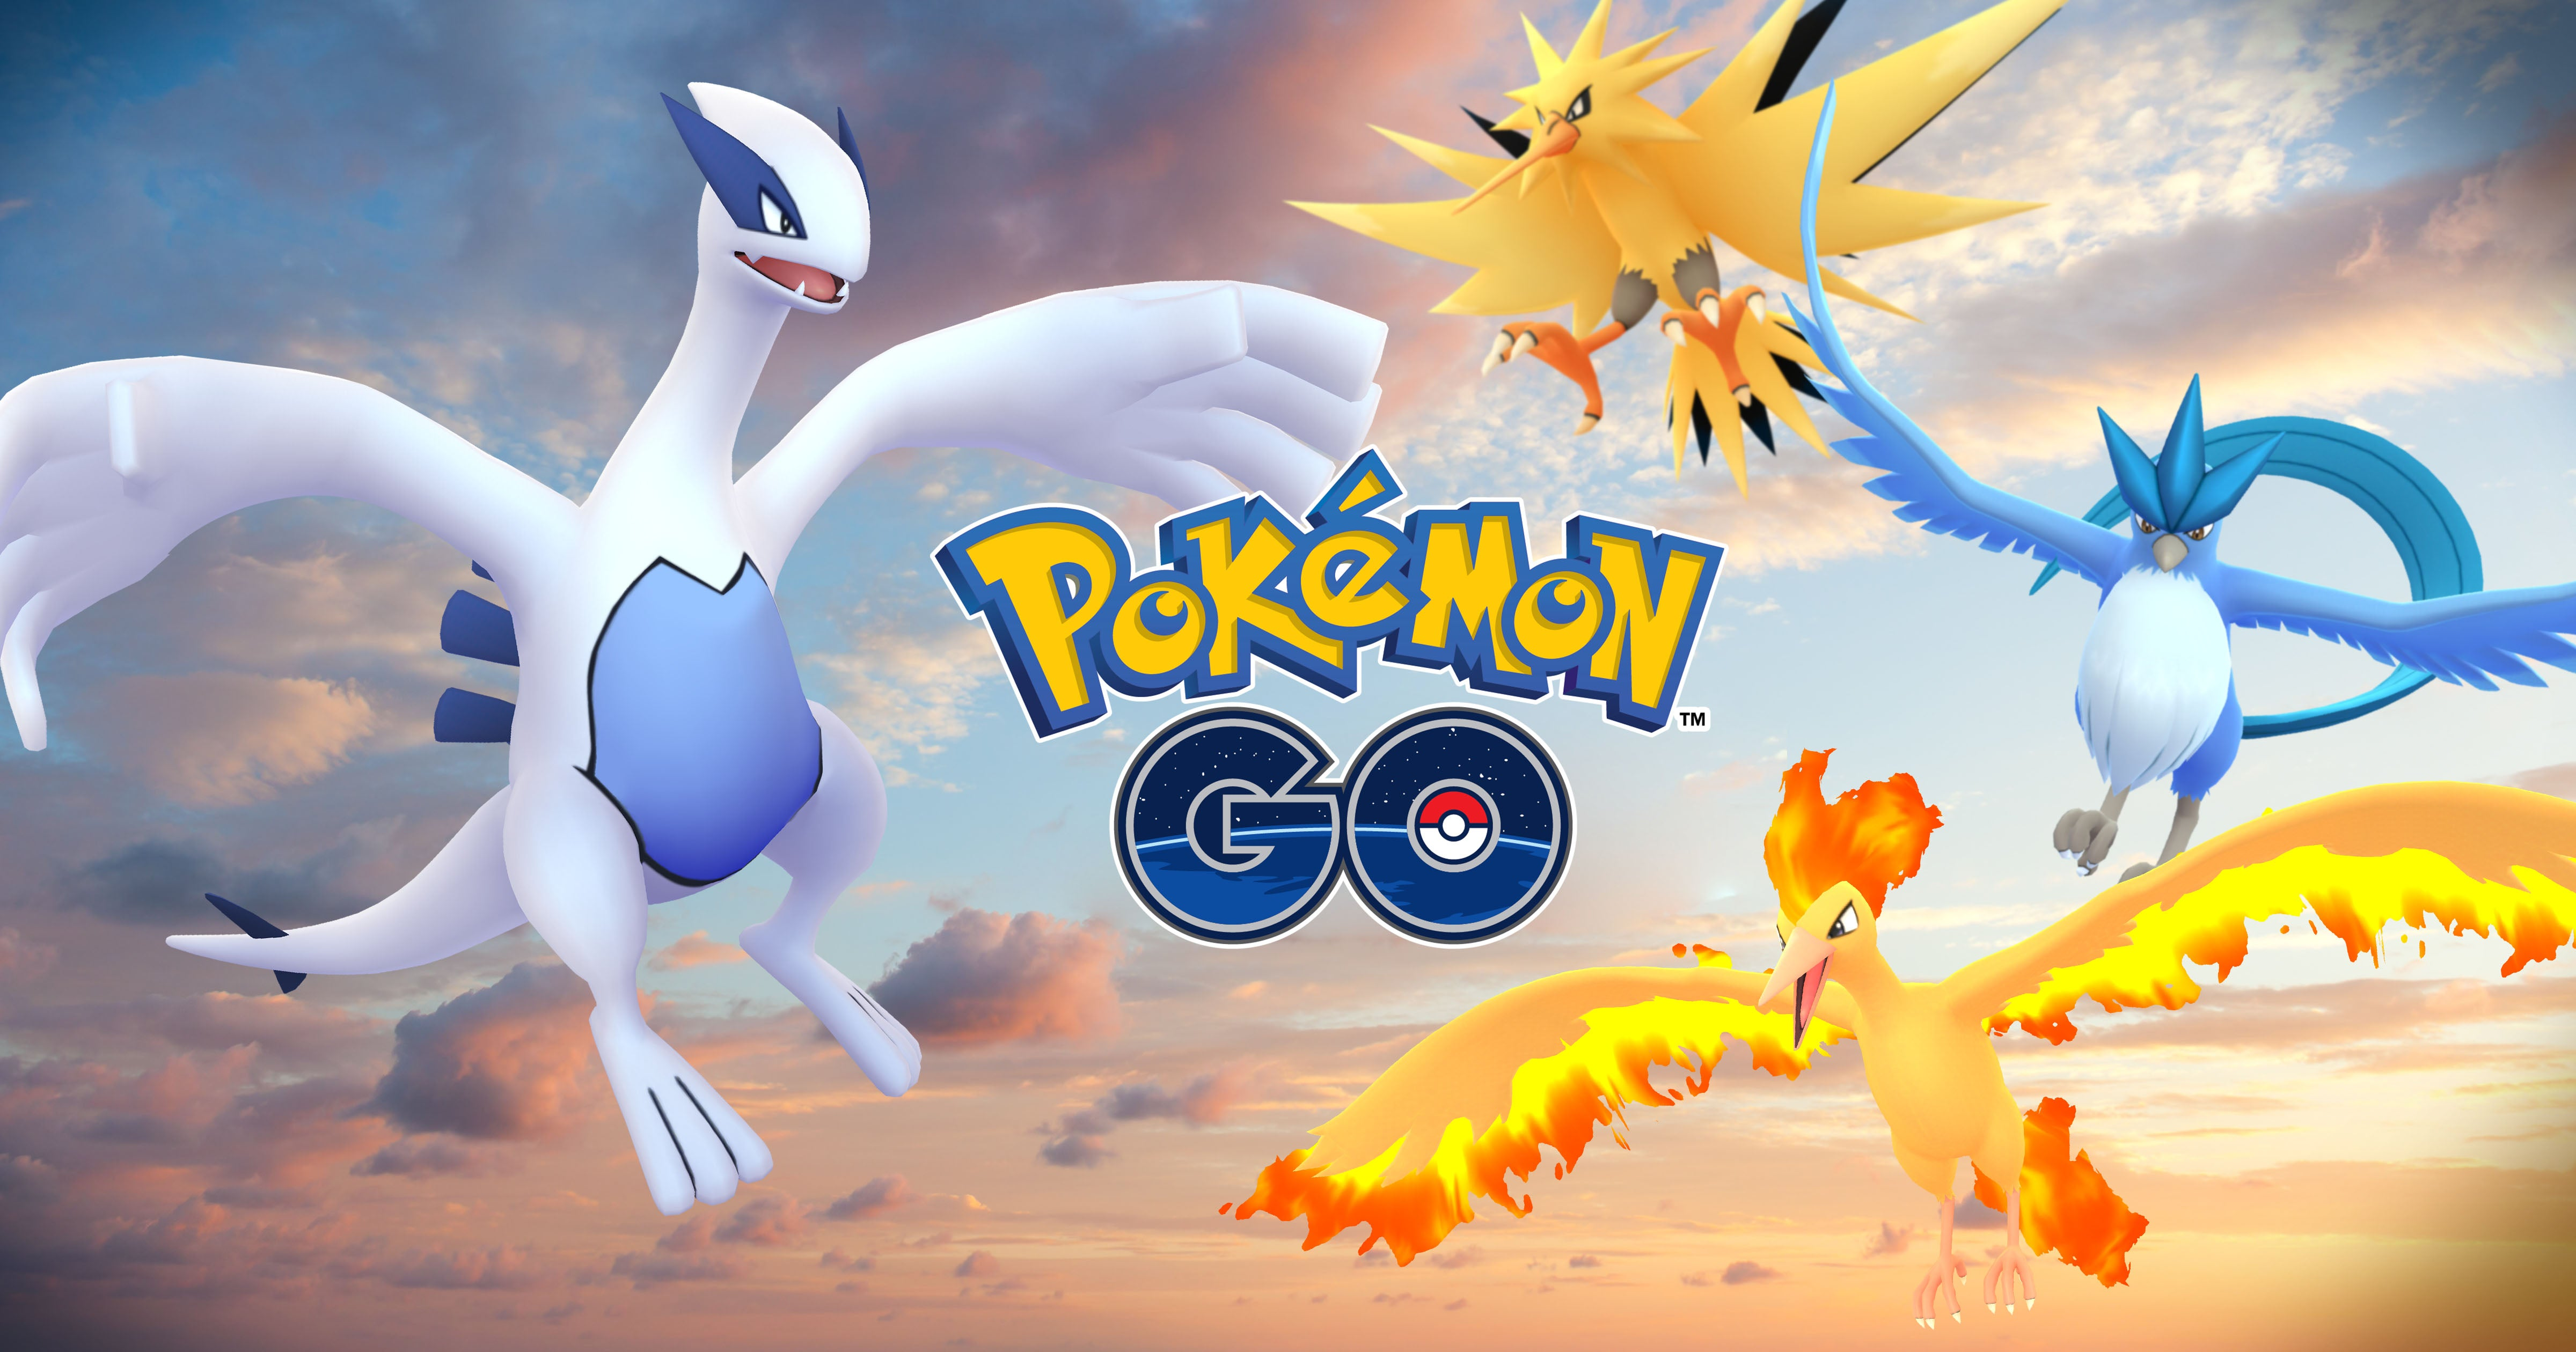 Pokemon Go Has A Confirmed Bug With Legendary Raids And Medals